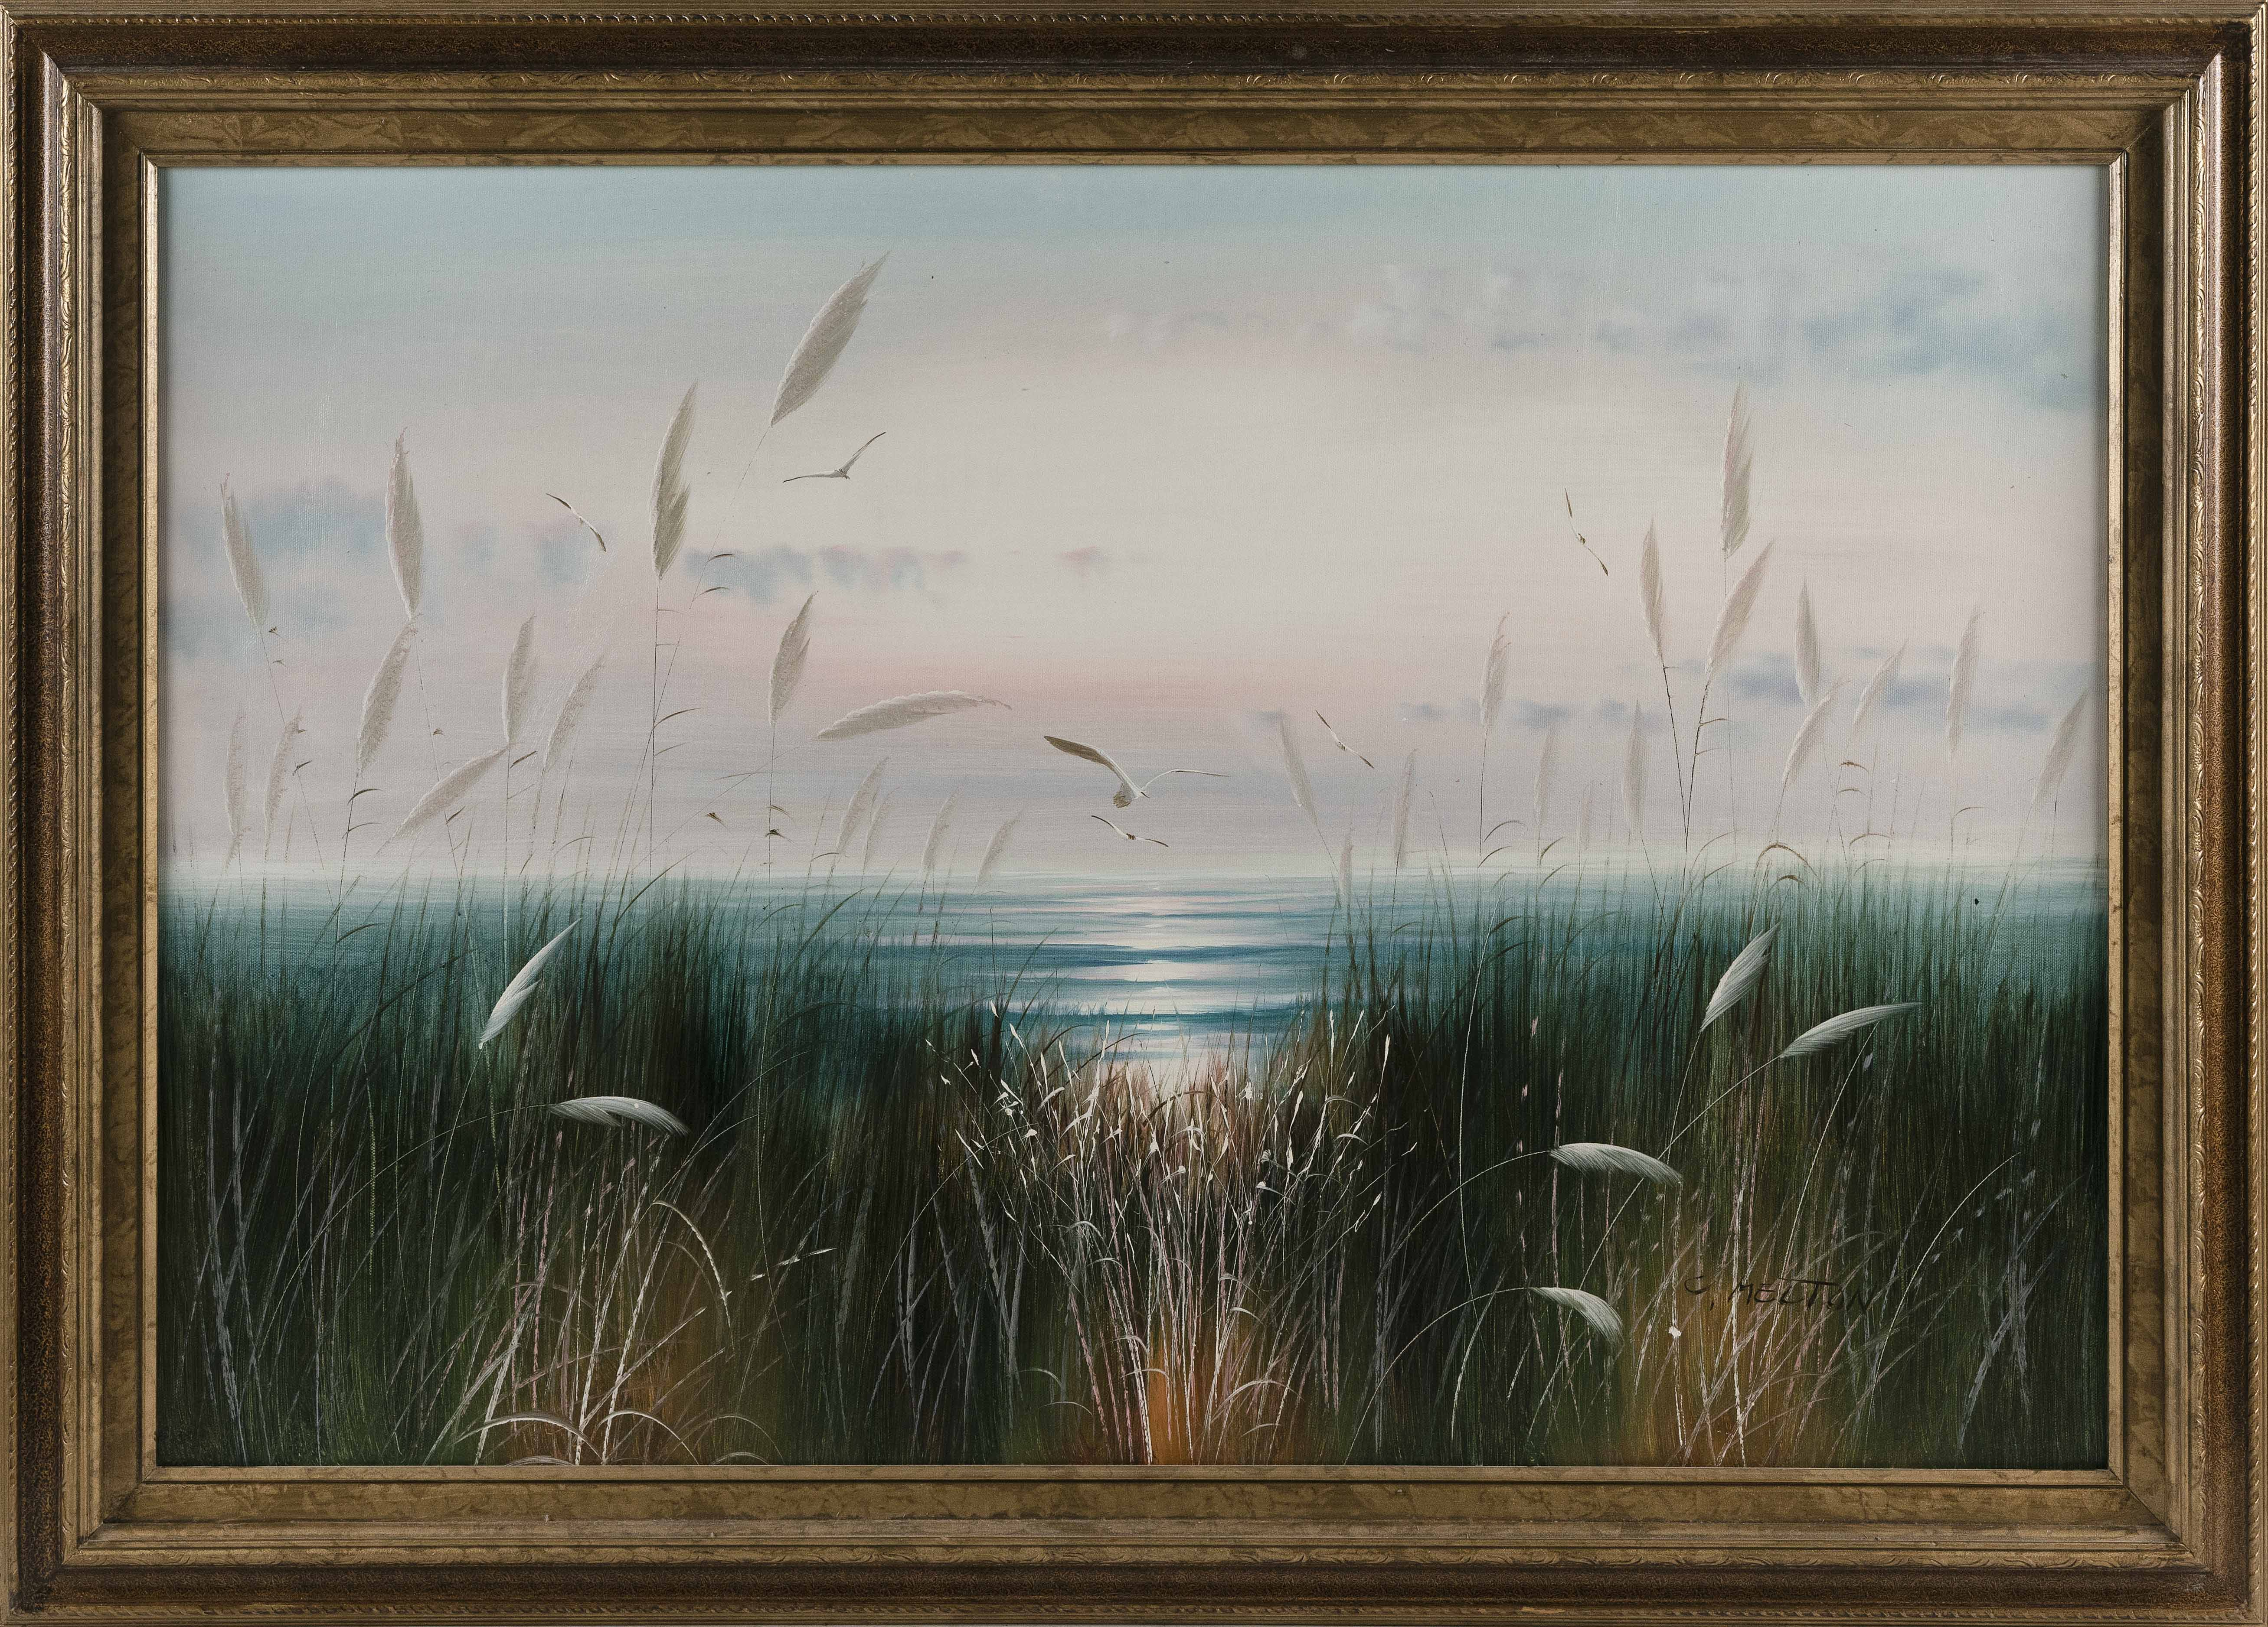 C. MELTON (America, Contemporary), Gulls soaring over the ocean., Oil on canvas, 24